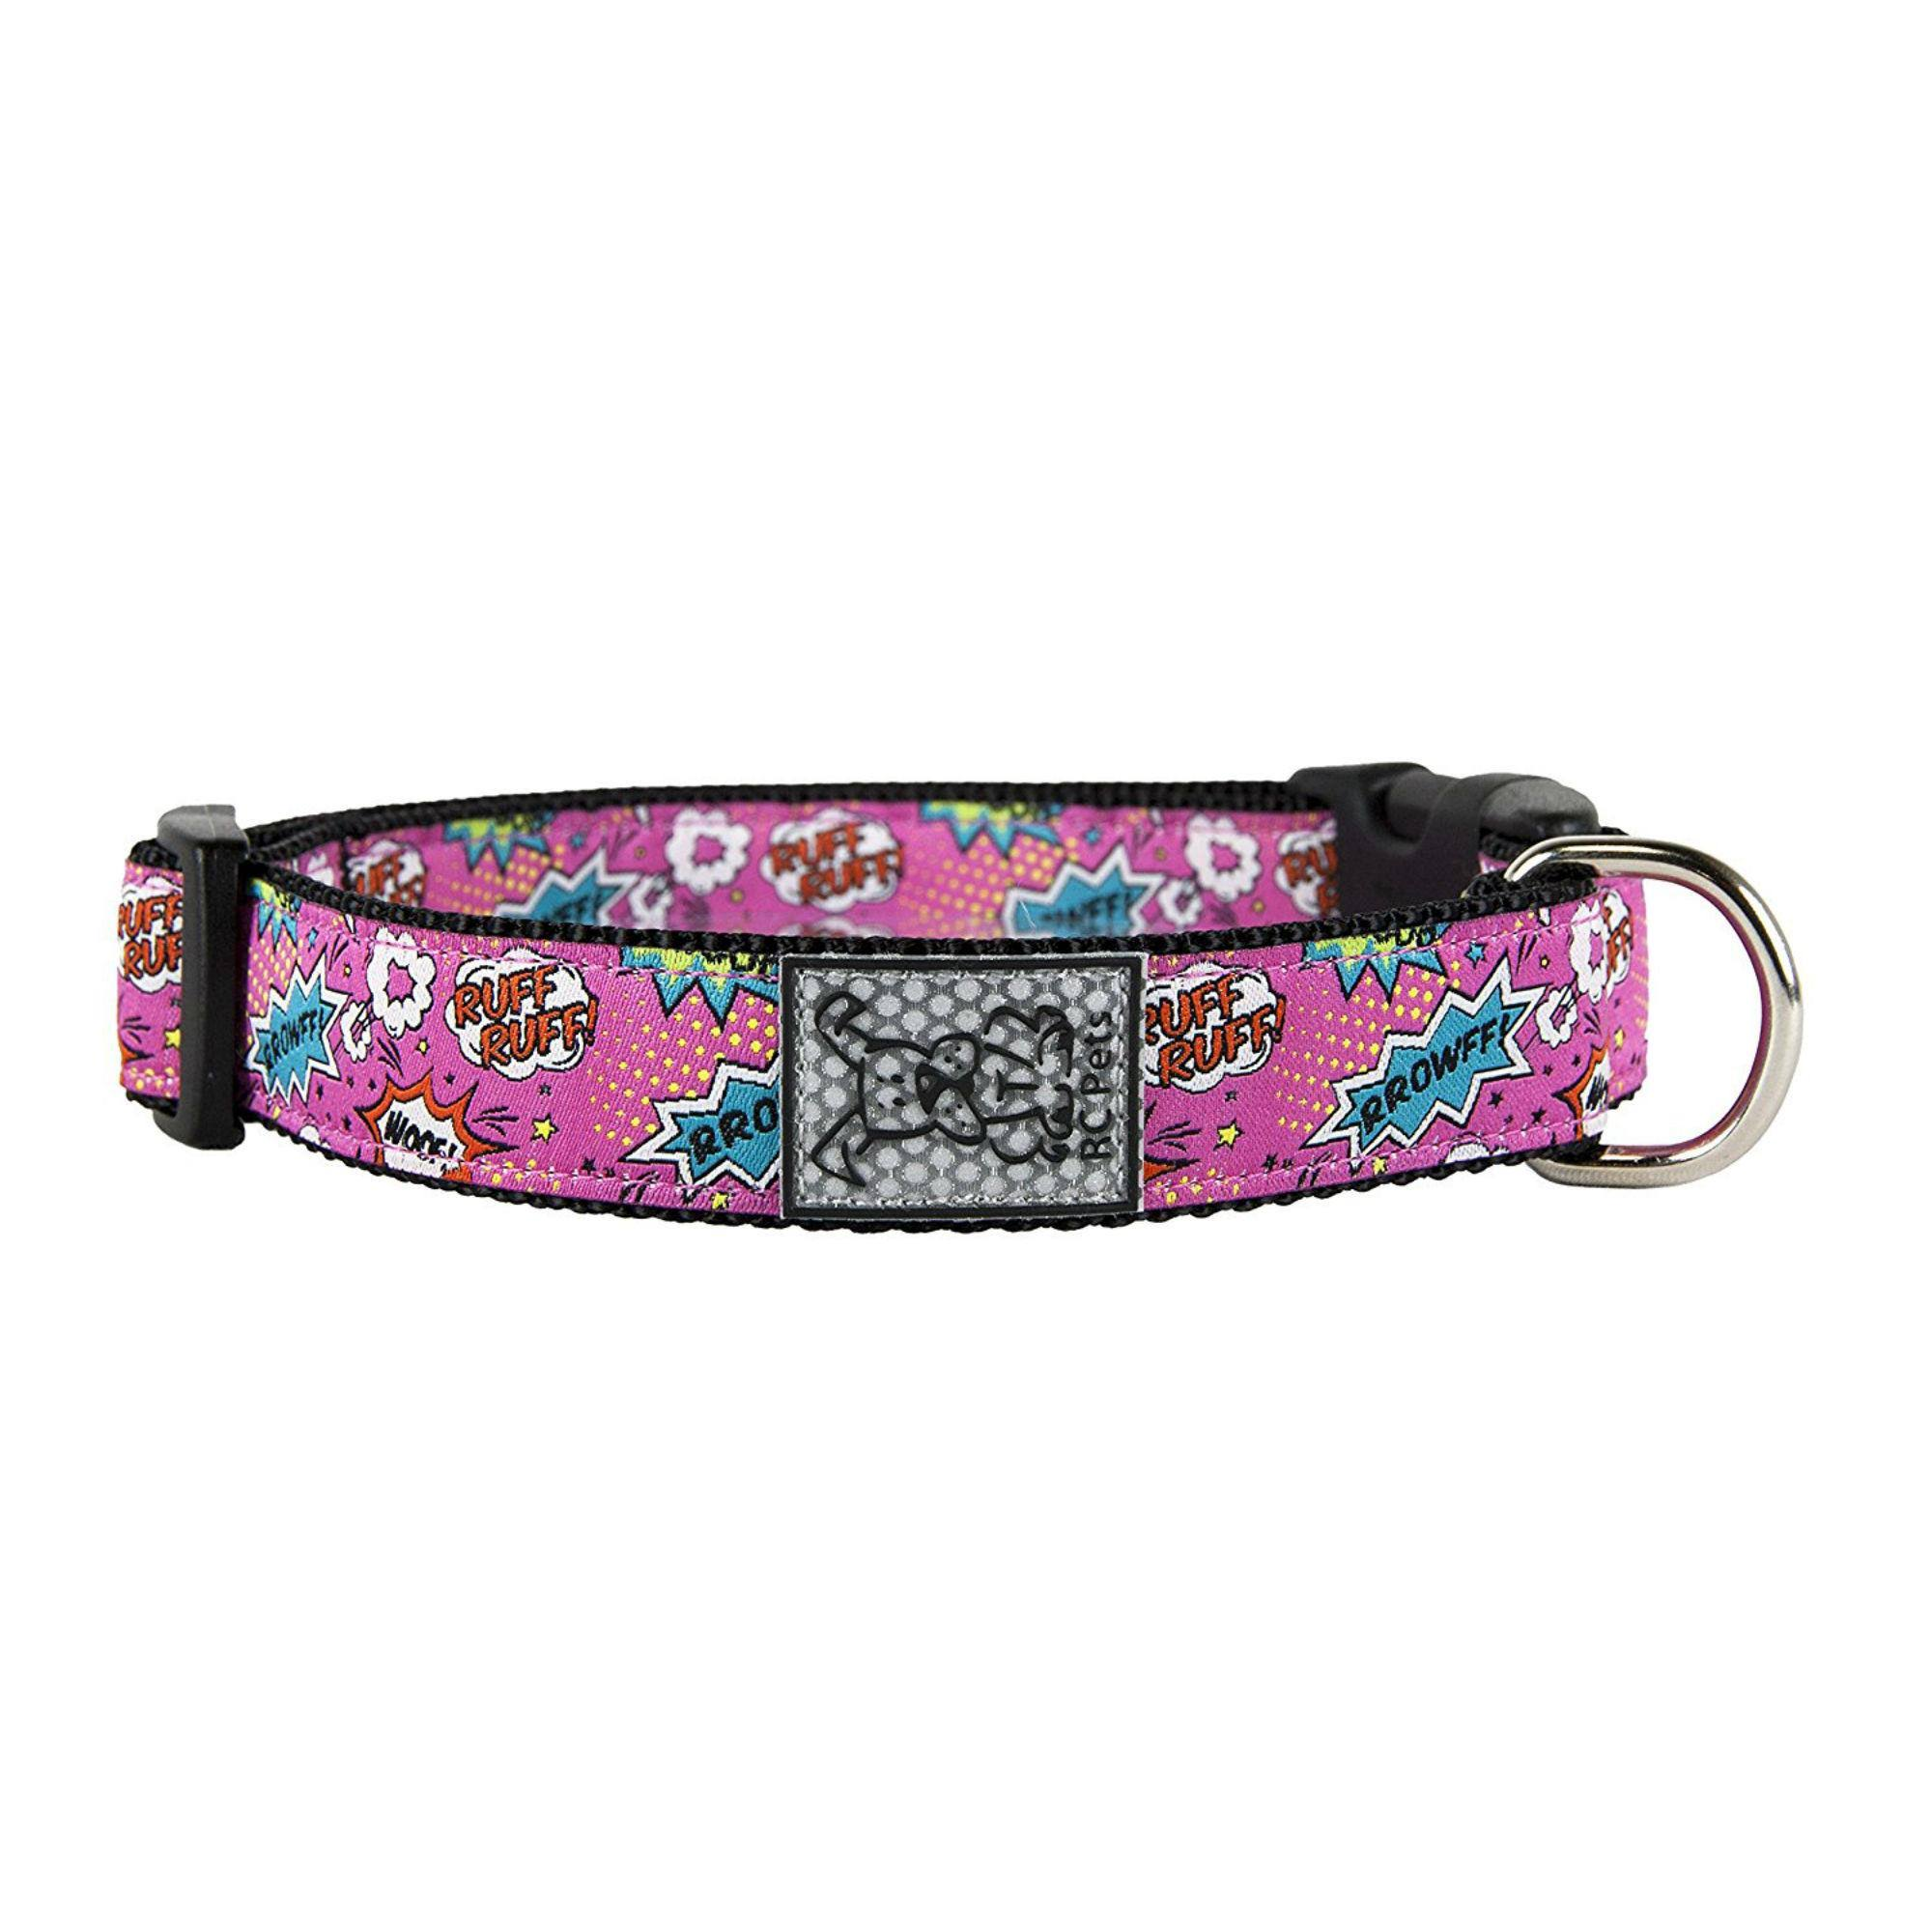 Pink Comic Sounds Adjustable Clip Dog Collar by RC Pet - Medium